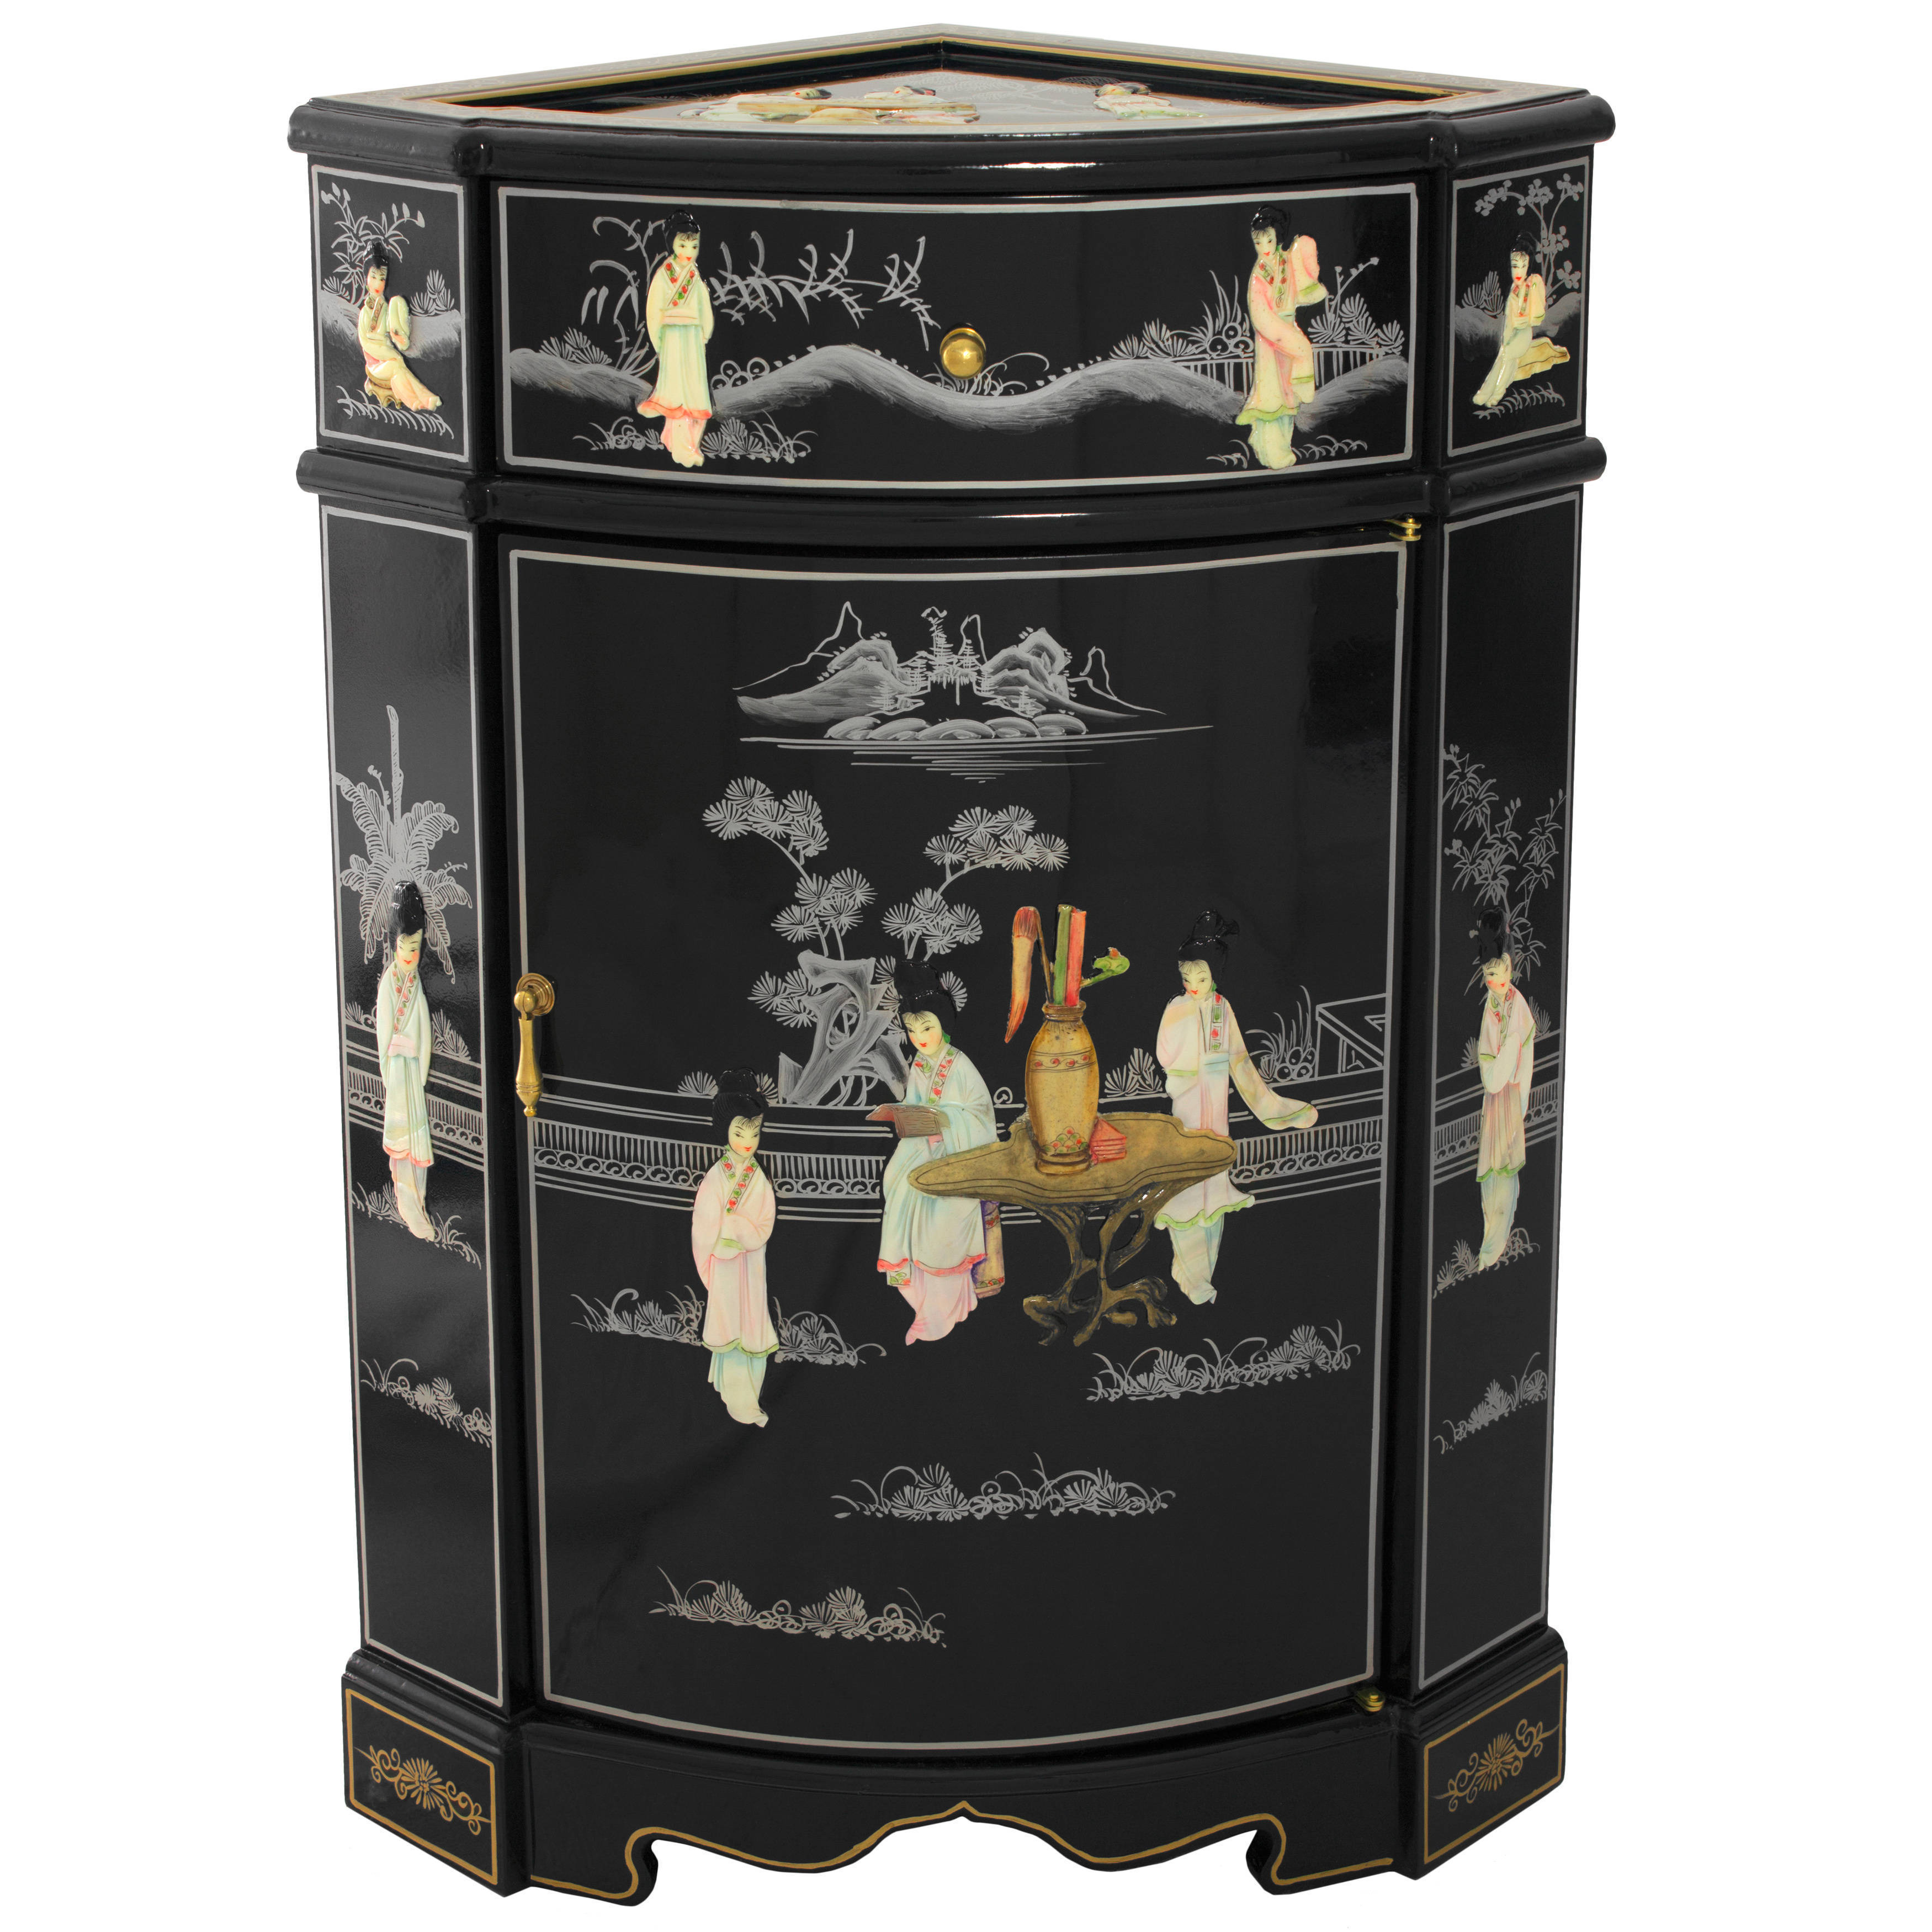 Black laquer furniture Traditional Japanese Shop Handmade Black Lacquer Mother Of Pearl Ladies Corner Cabinet china Free Shipping Today Overstockcom 9351807 Overstock Shop Handmade Black Lacquer Mother Of Pearl Ladies Corner Cabinet